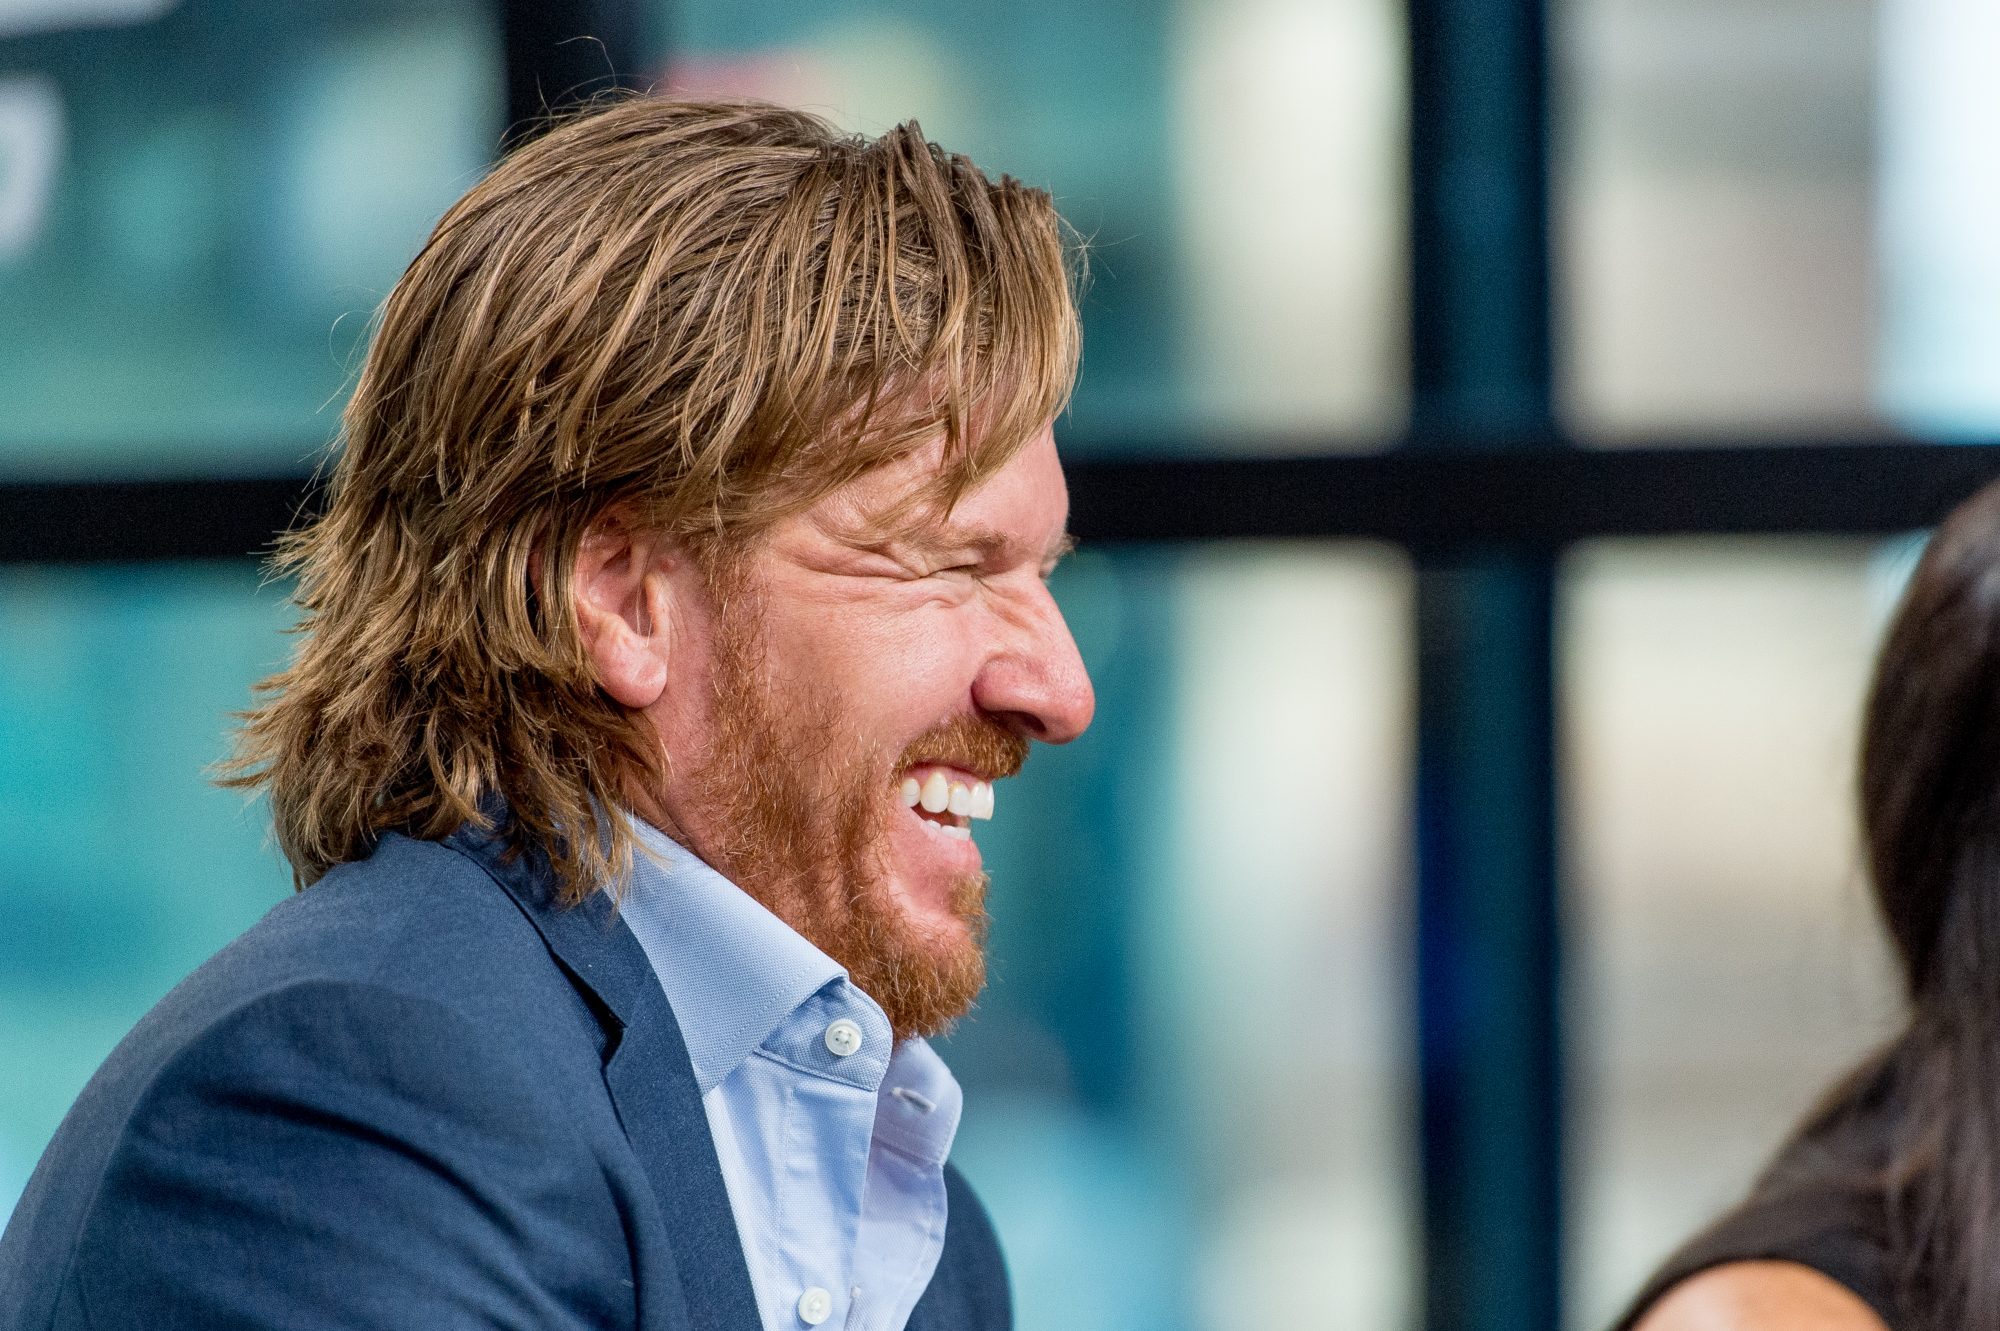 Chip Gaines Smiling